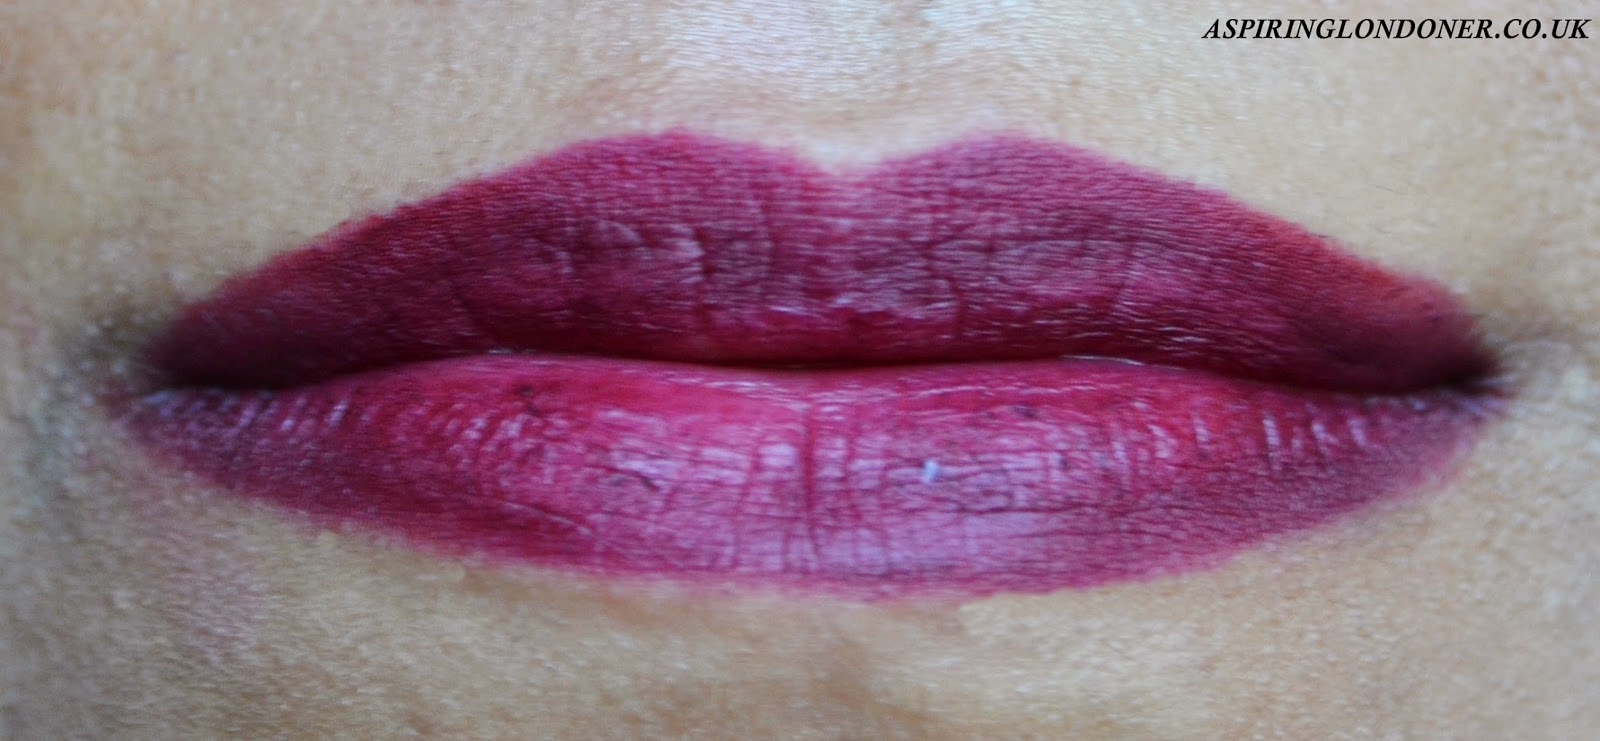 Kiko Smart Lip Pencin in 710 Rouge Noir Swatch - Aspiring Londoner